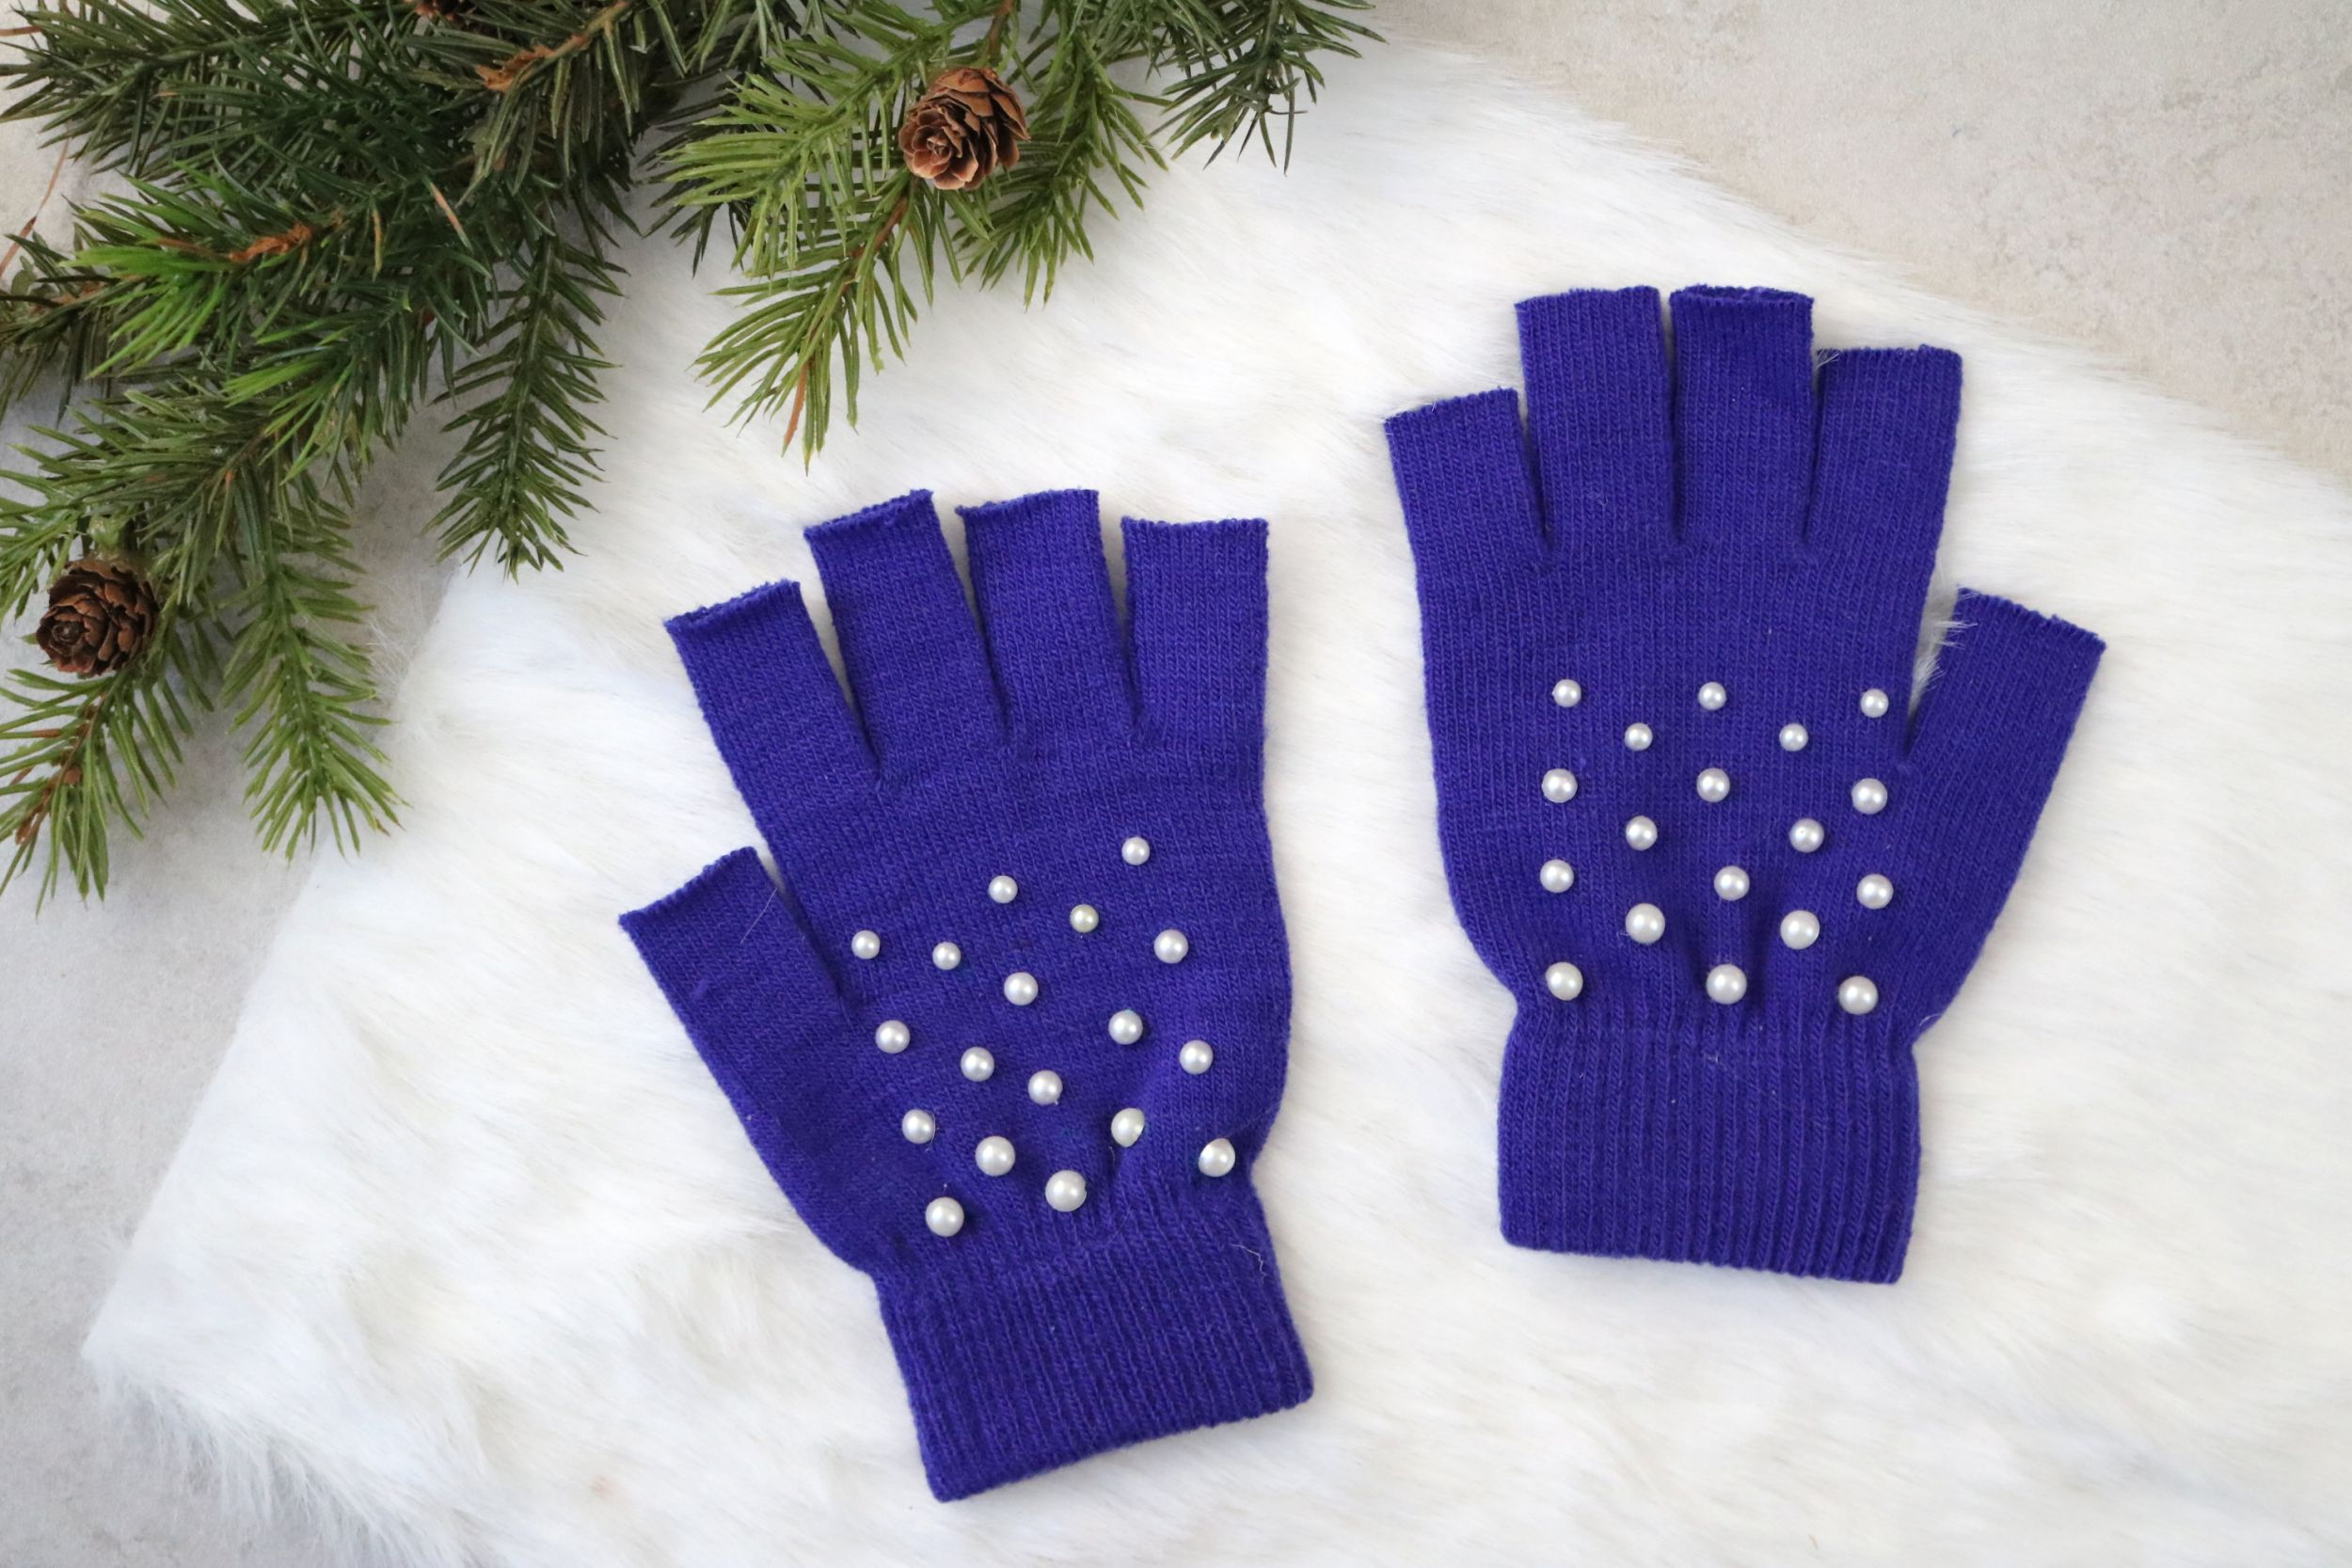 MORE: DIY Pearl-Studded Fingerless Gloves